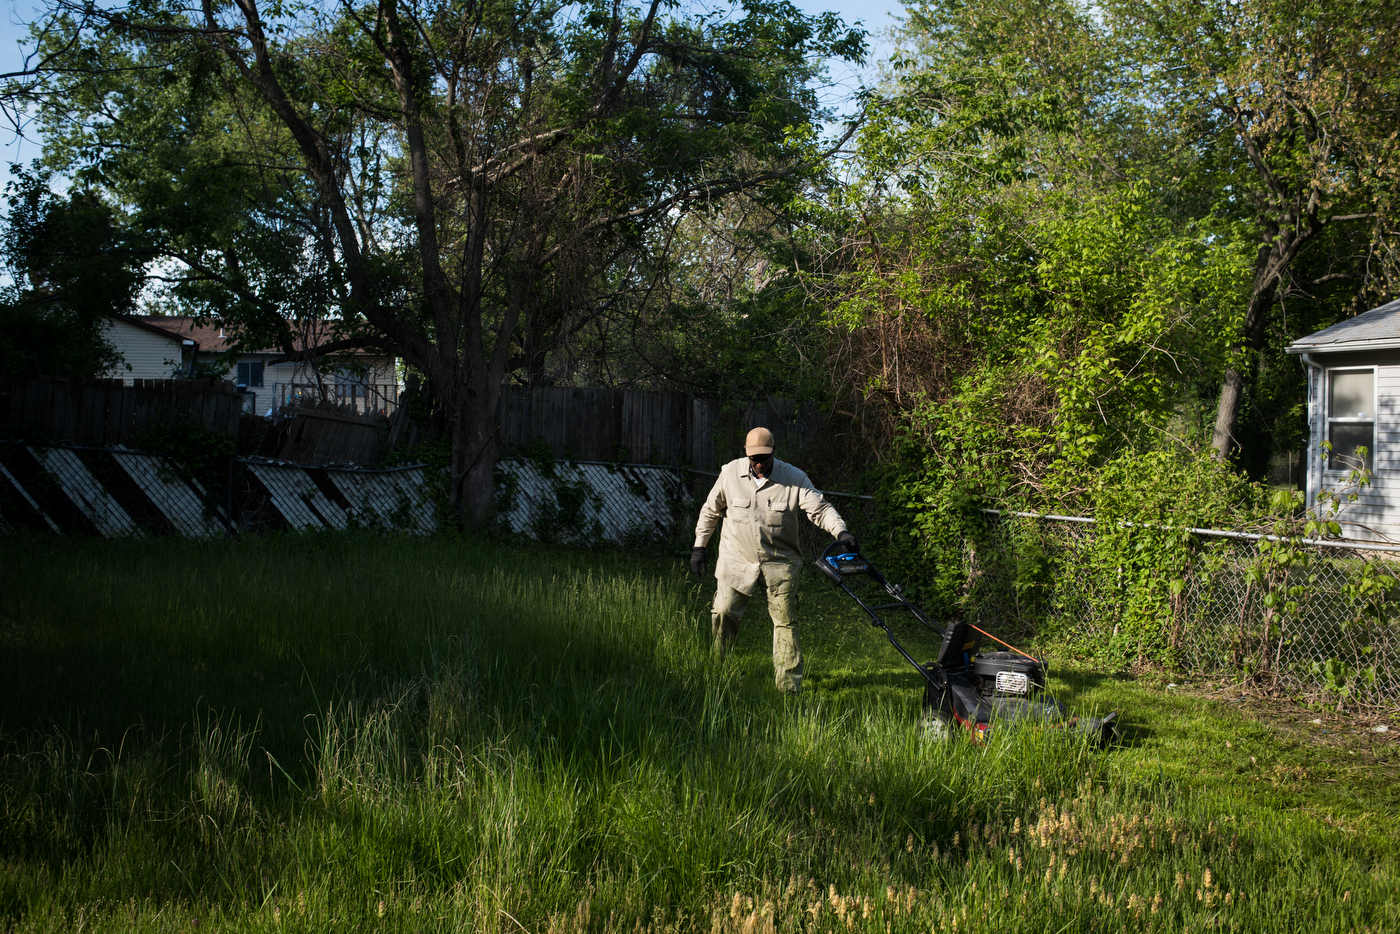 """Richard clears an overgrown yard of a rental house in the Bermuda neighborhood of Ferguson, Mo. Code enforcement officers are a common sight in the neighborhood and ticket people for long lawns and many discretionary violations like """"disturbing the peace."""" Code enforcement accounted for $2.46 million dollars of the city's budget in 2013."""